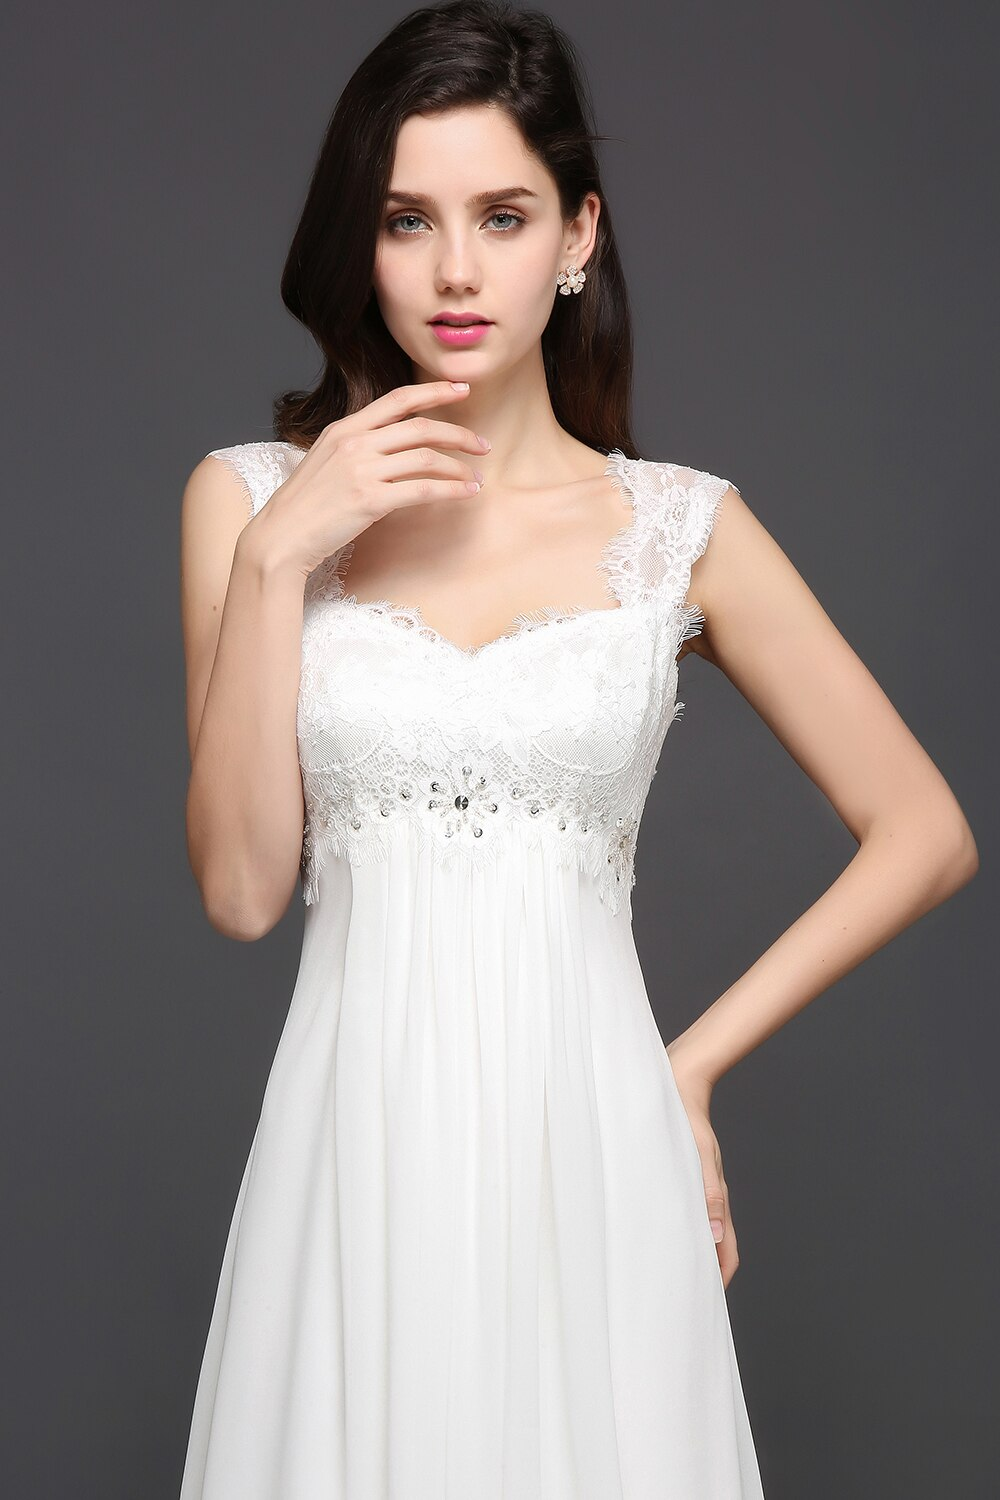 Women's Laced Bridal Dress with Open Back